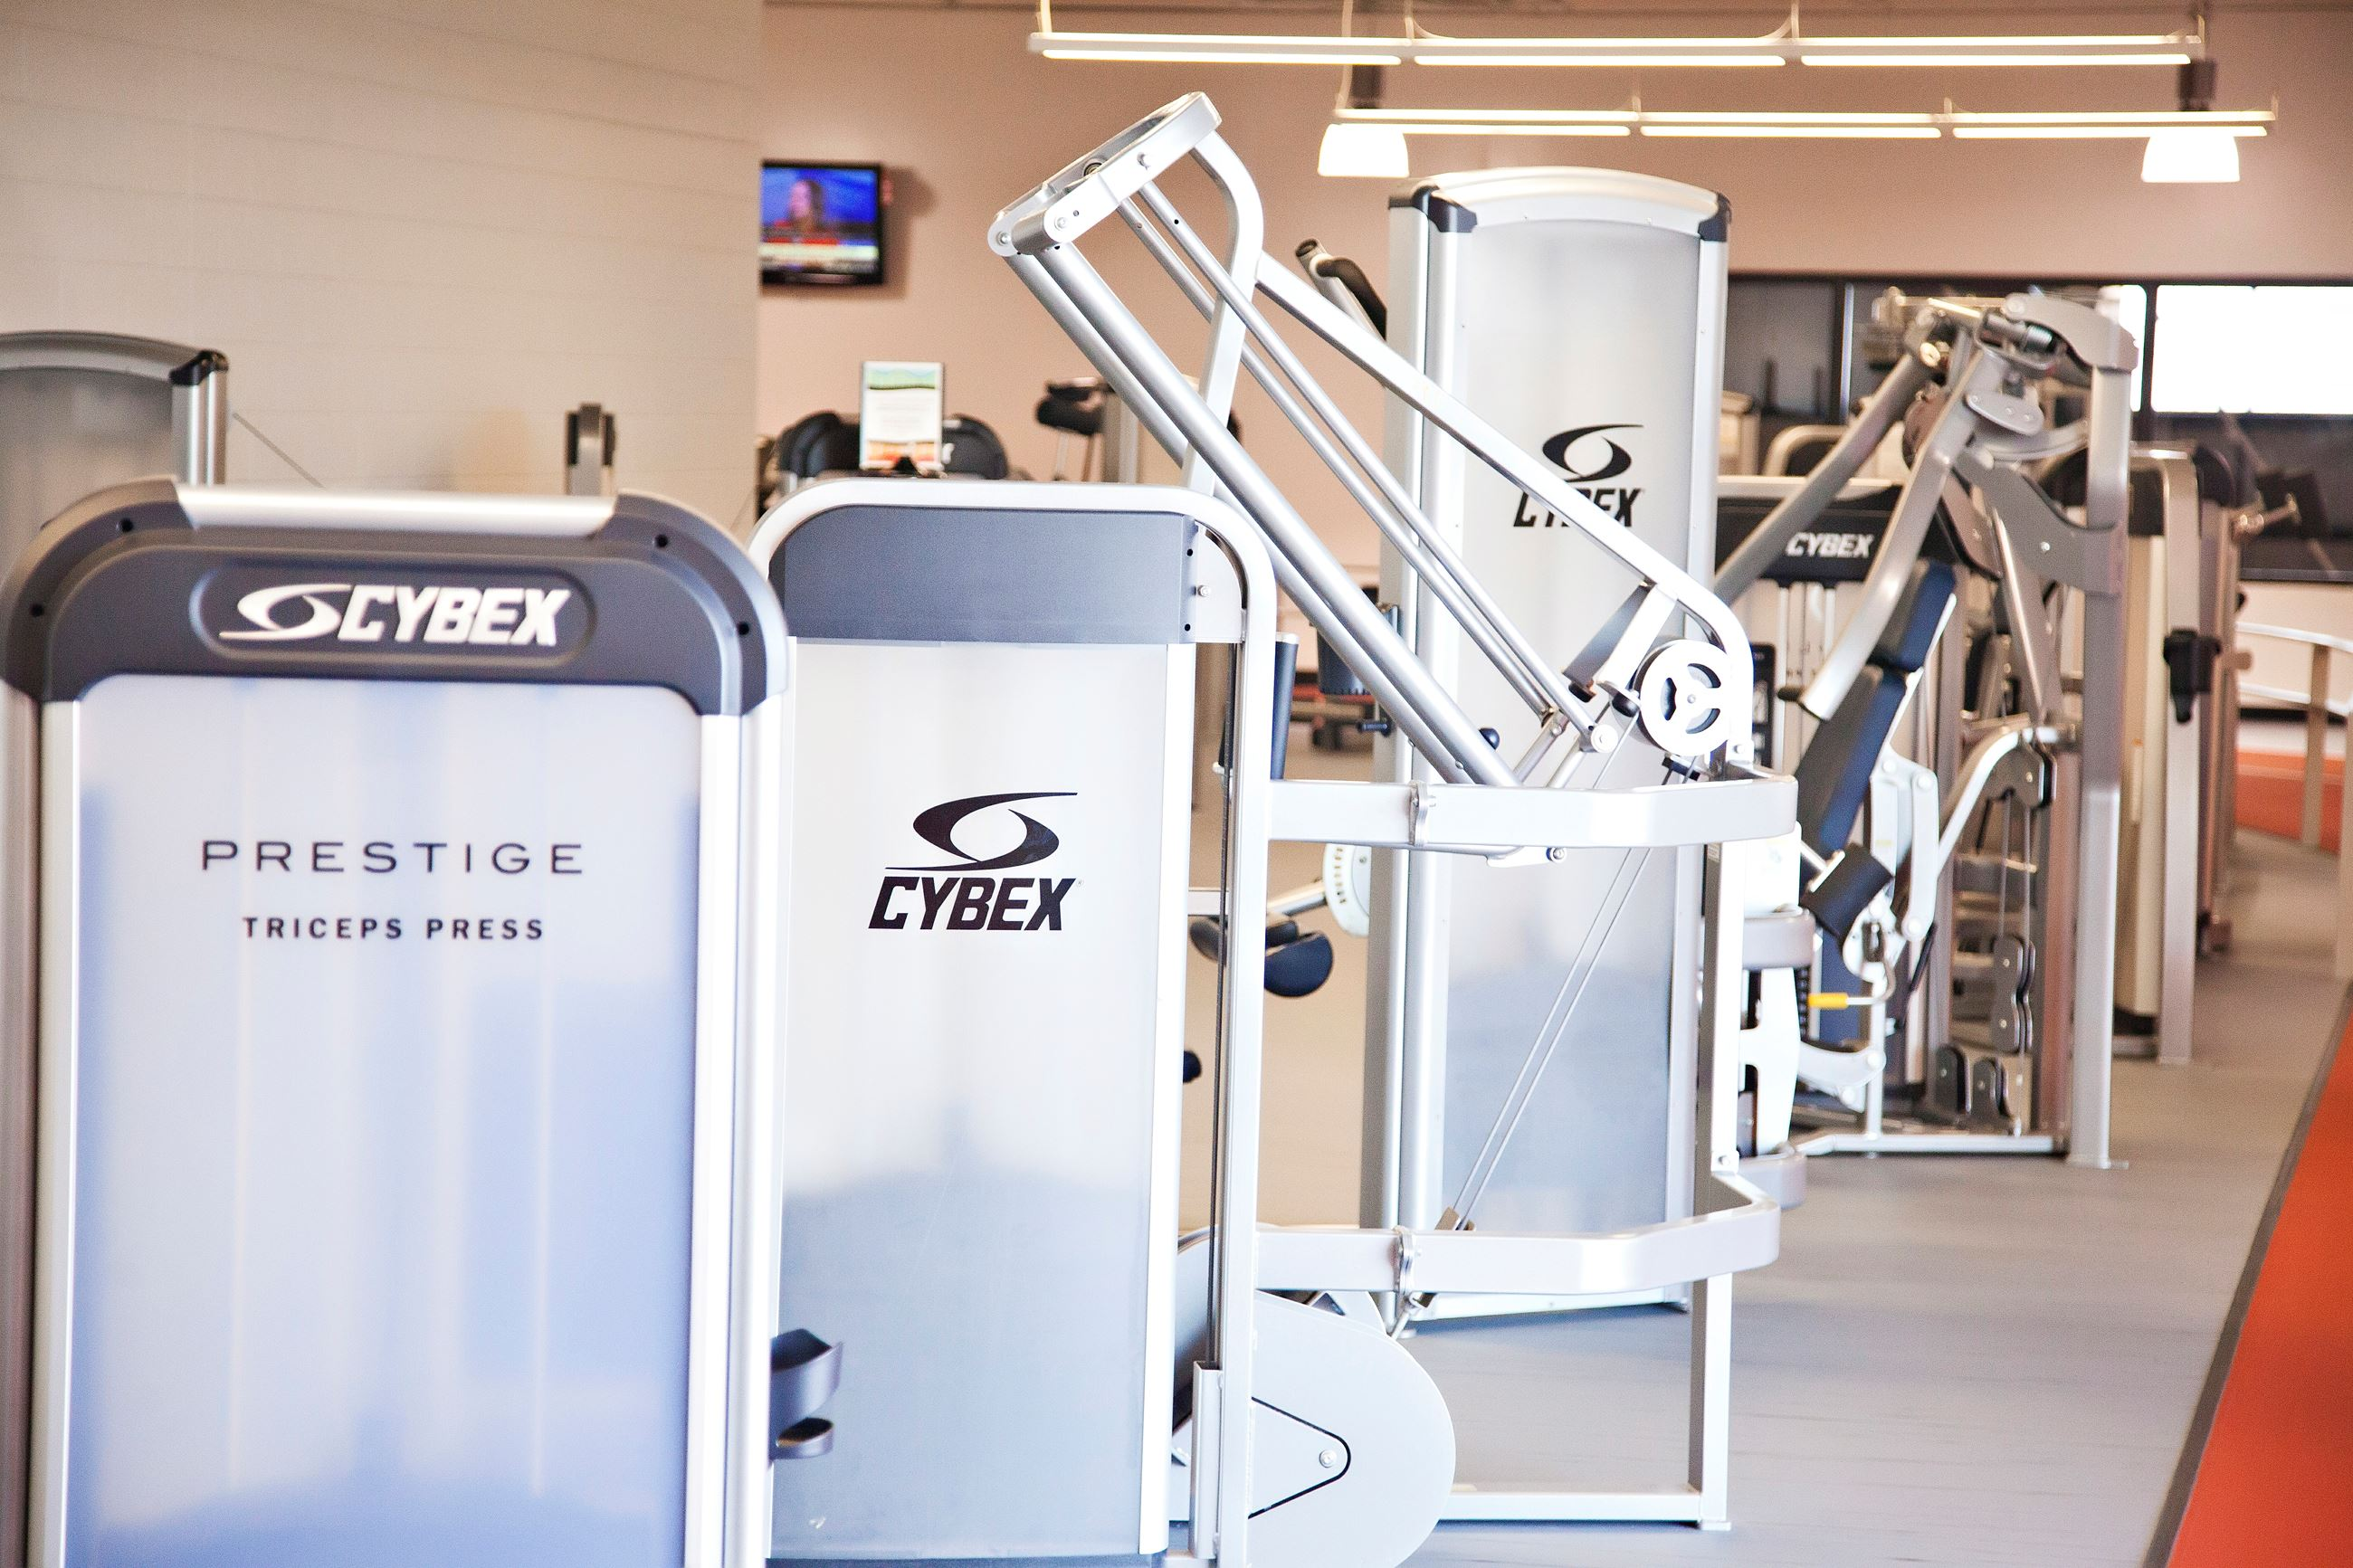 Cybex Strength Training